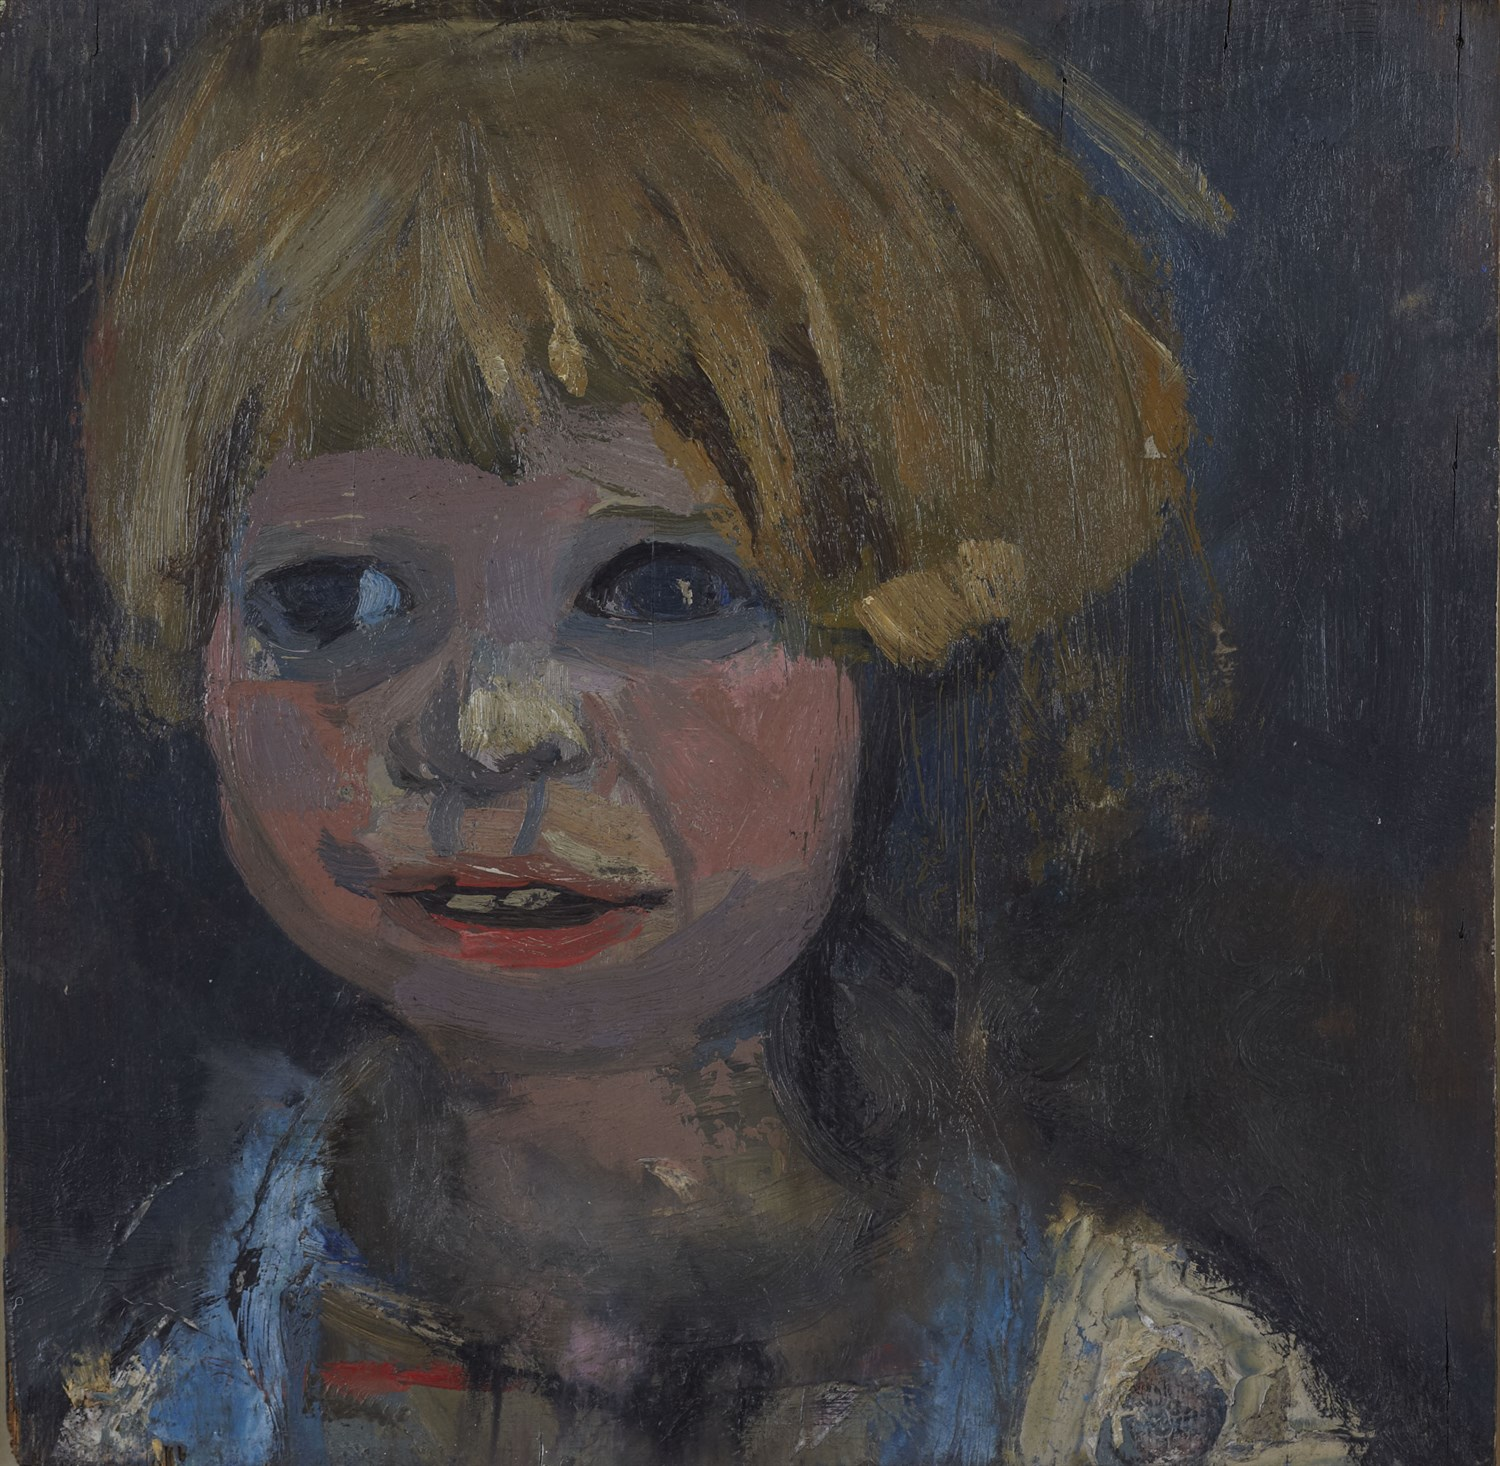 173 - JOAN EARDLEY R.S.A (SCOTTISH 1921-1963)